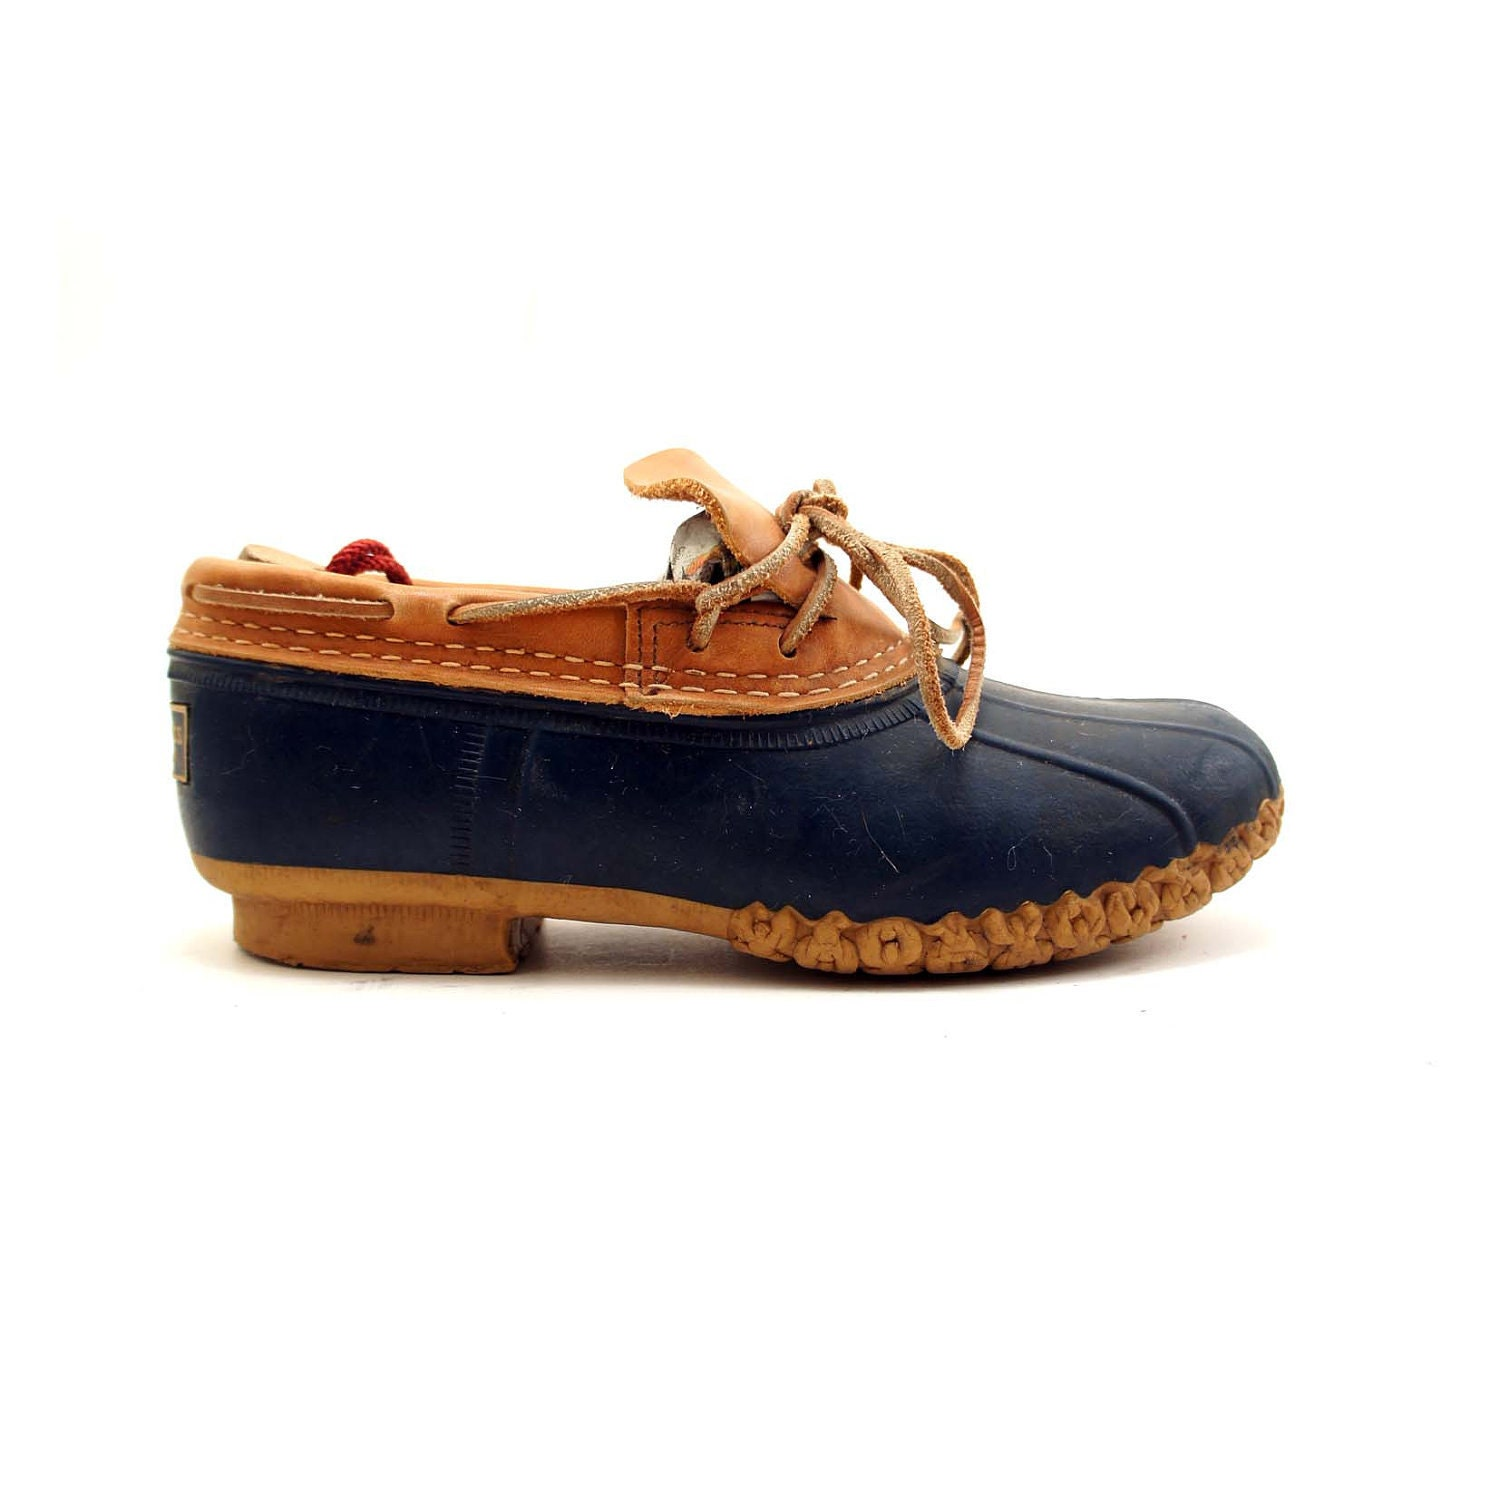 Ll Bean Duck Shoes Blue And Tan For A Women S Size 6 Best